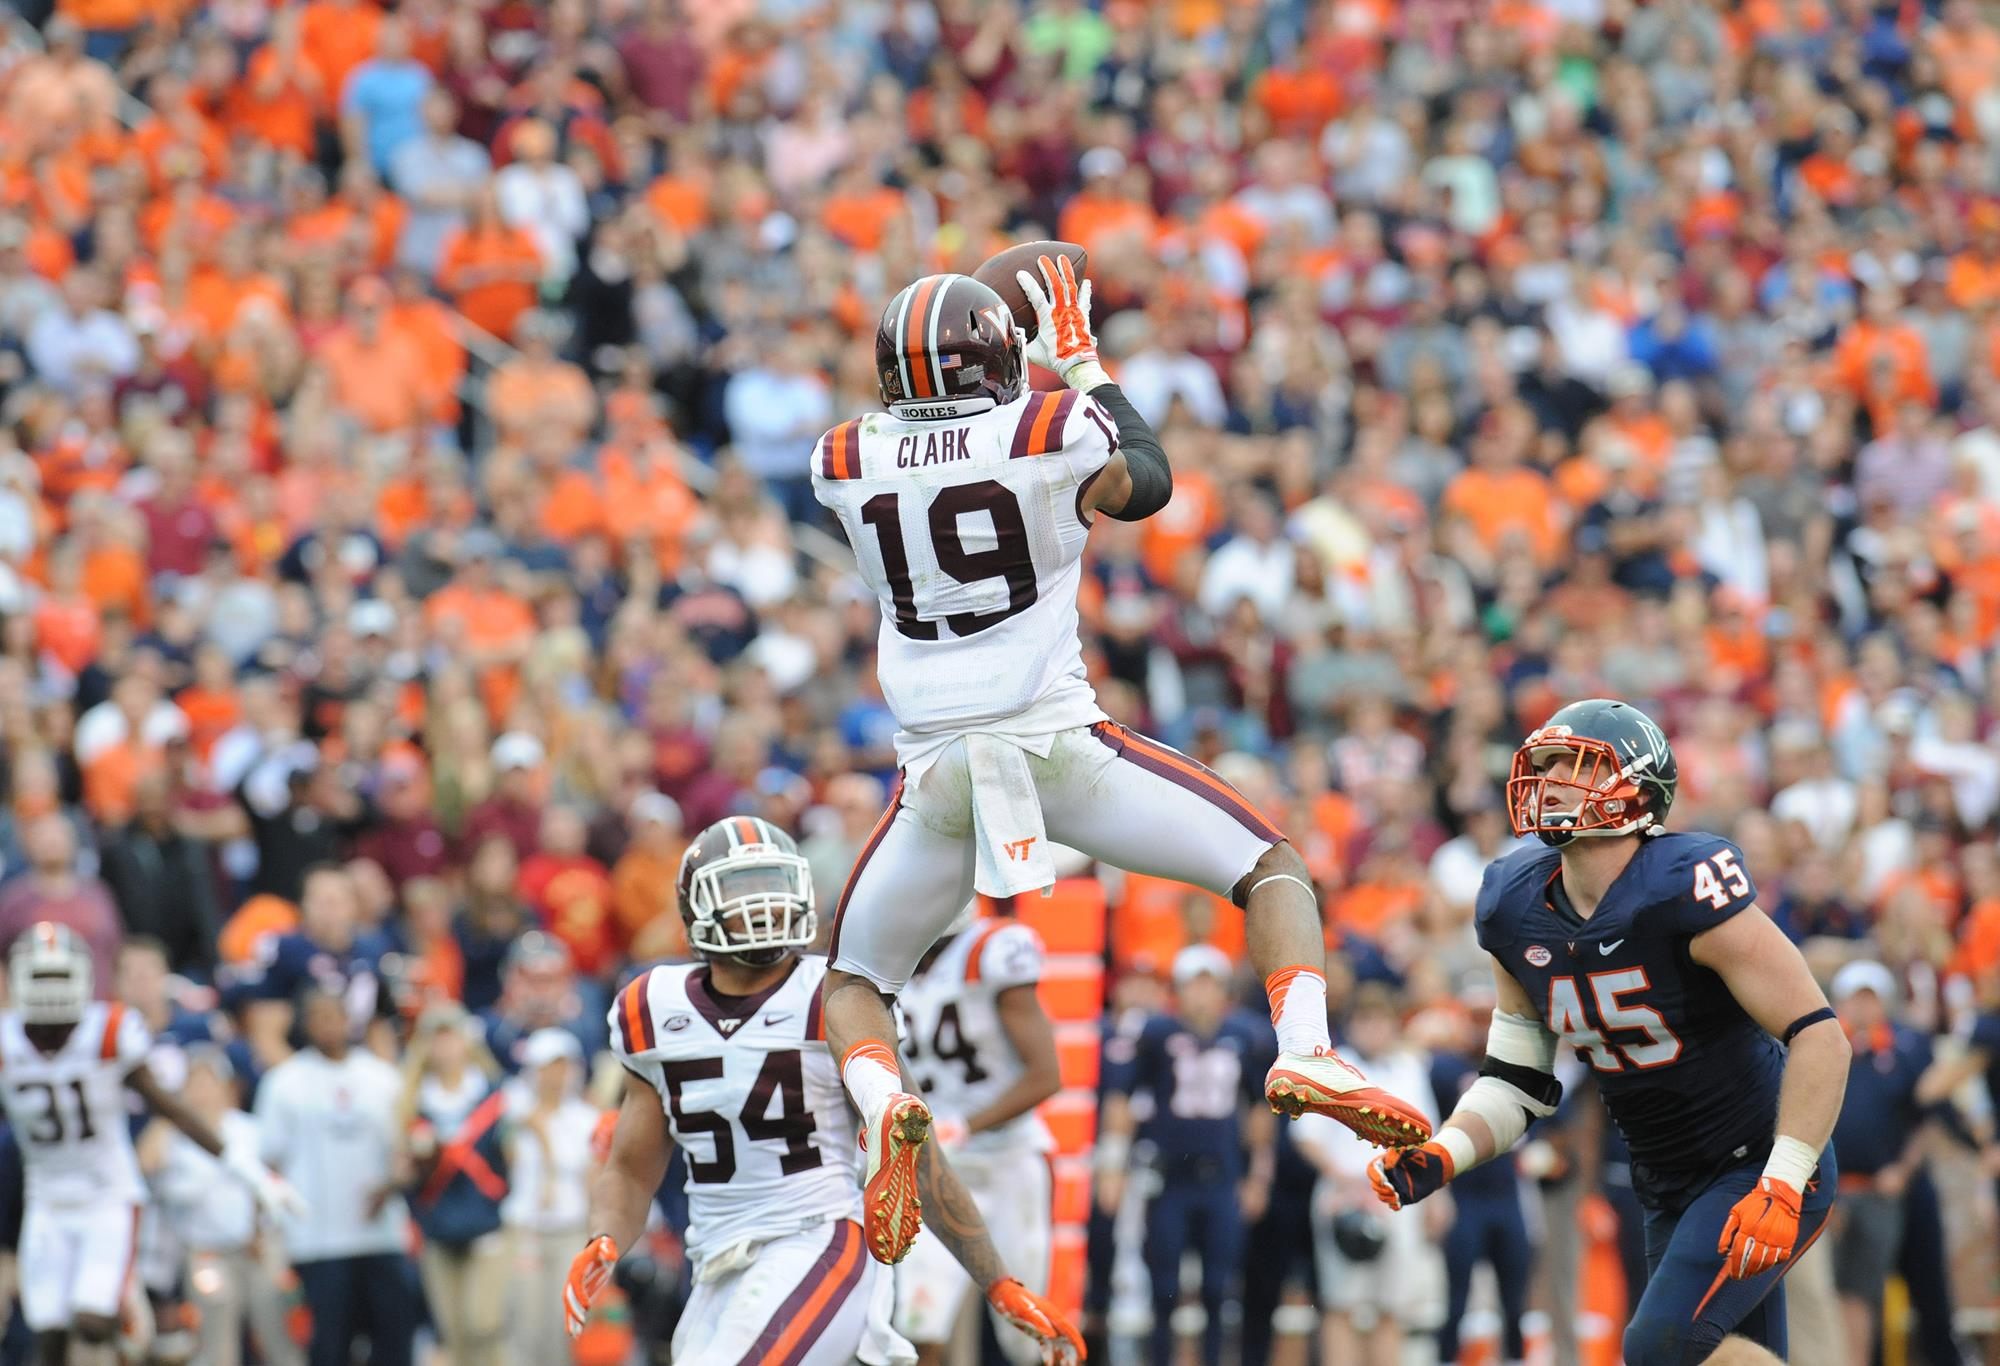 Hokies With Many Great Memories In Rivalry With Uva